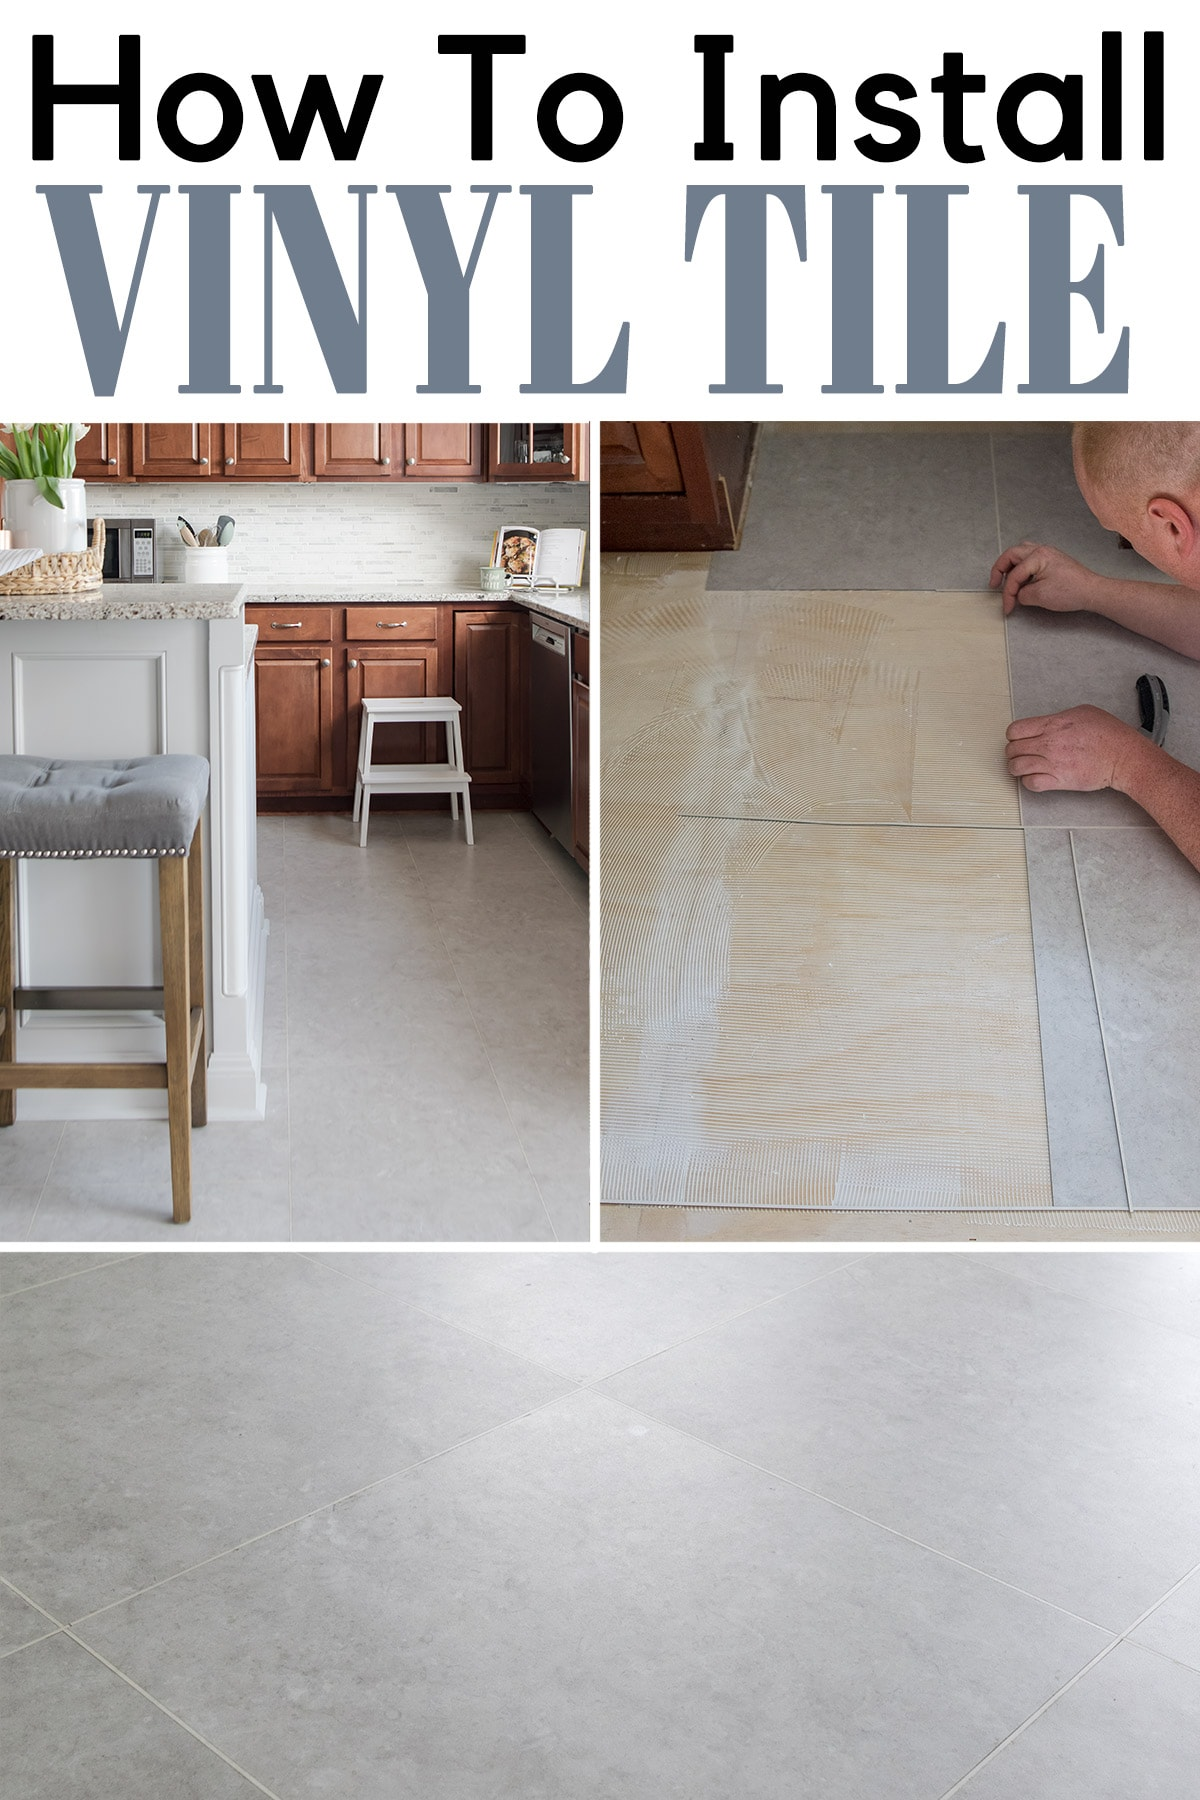 Luxury vinyl tile installation process in kitchen remodel with post title.